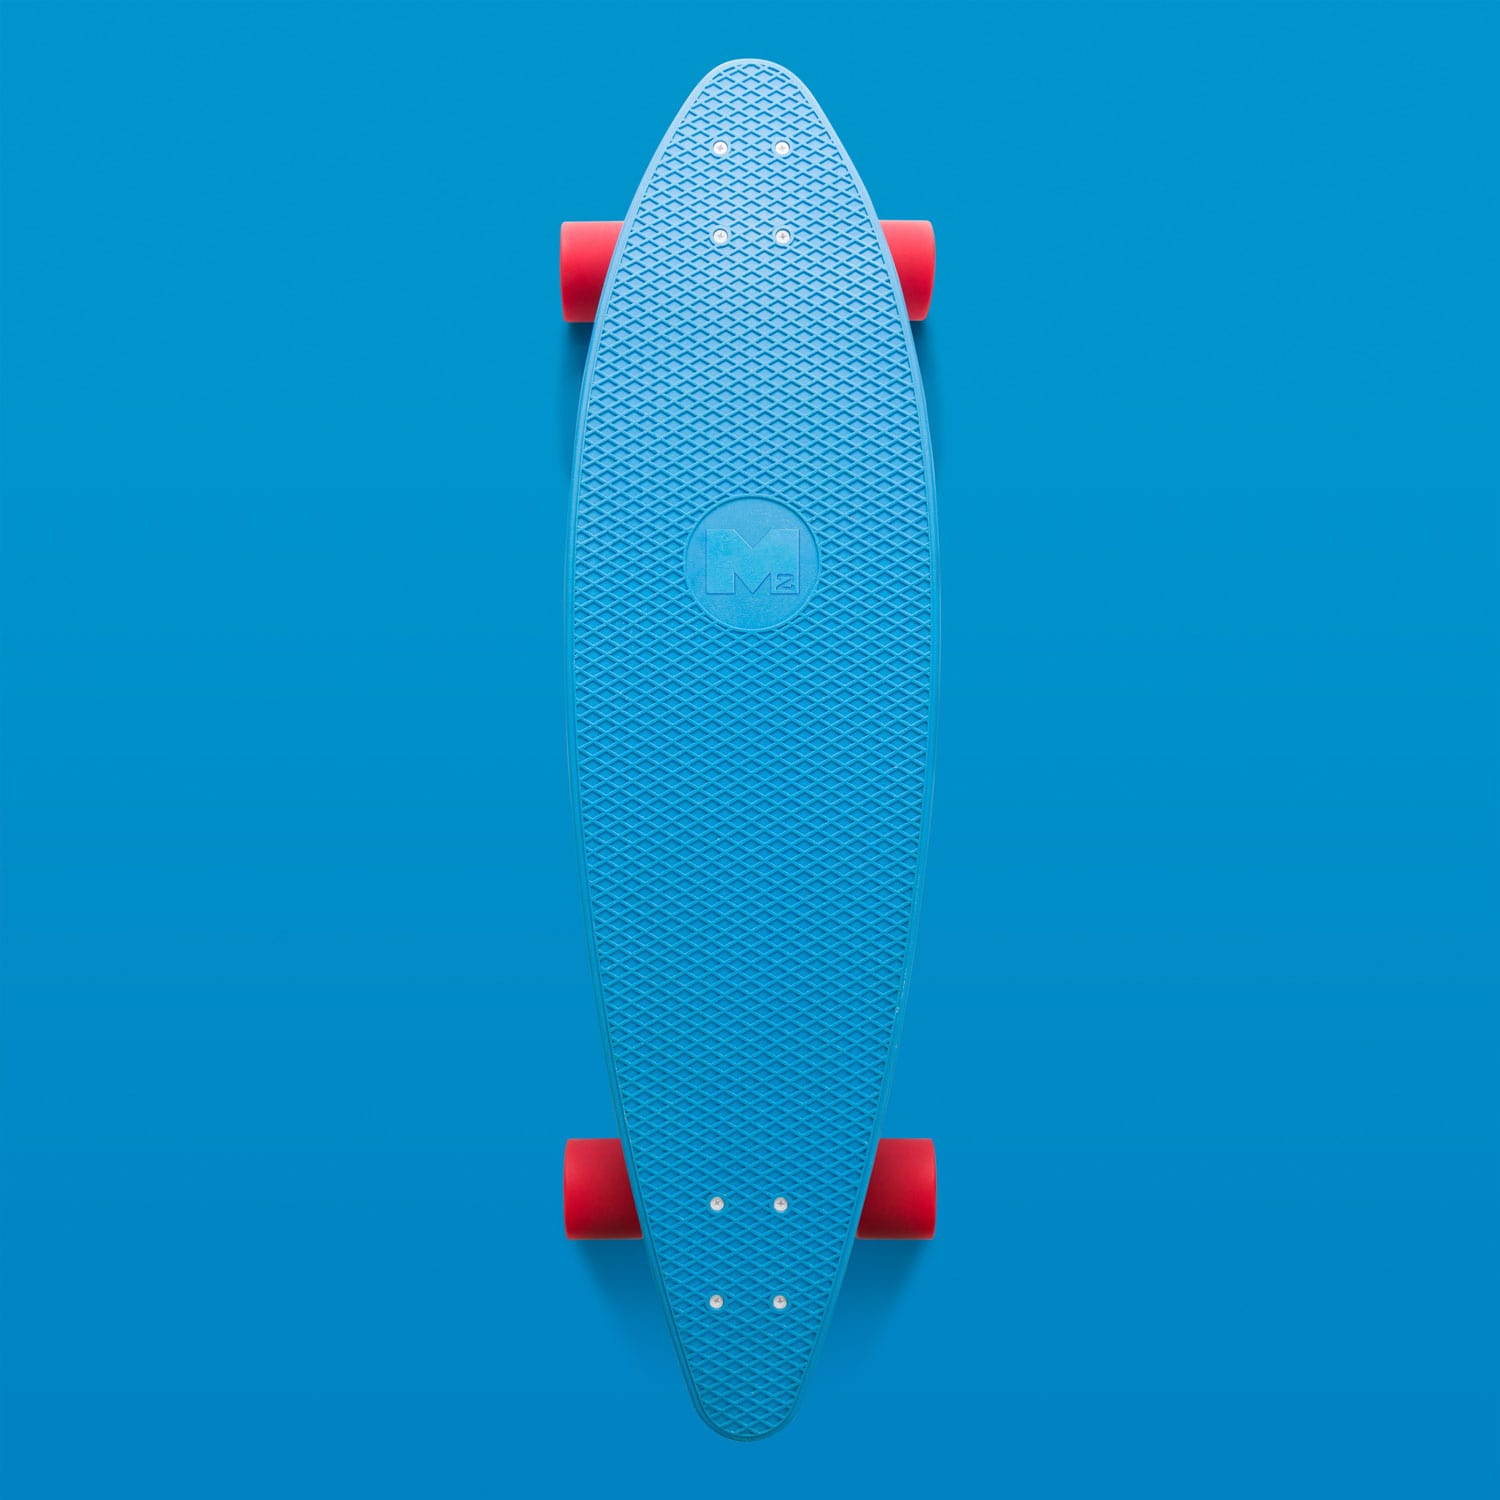 Skateboard blend well with color